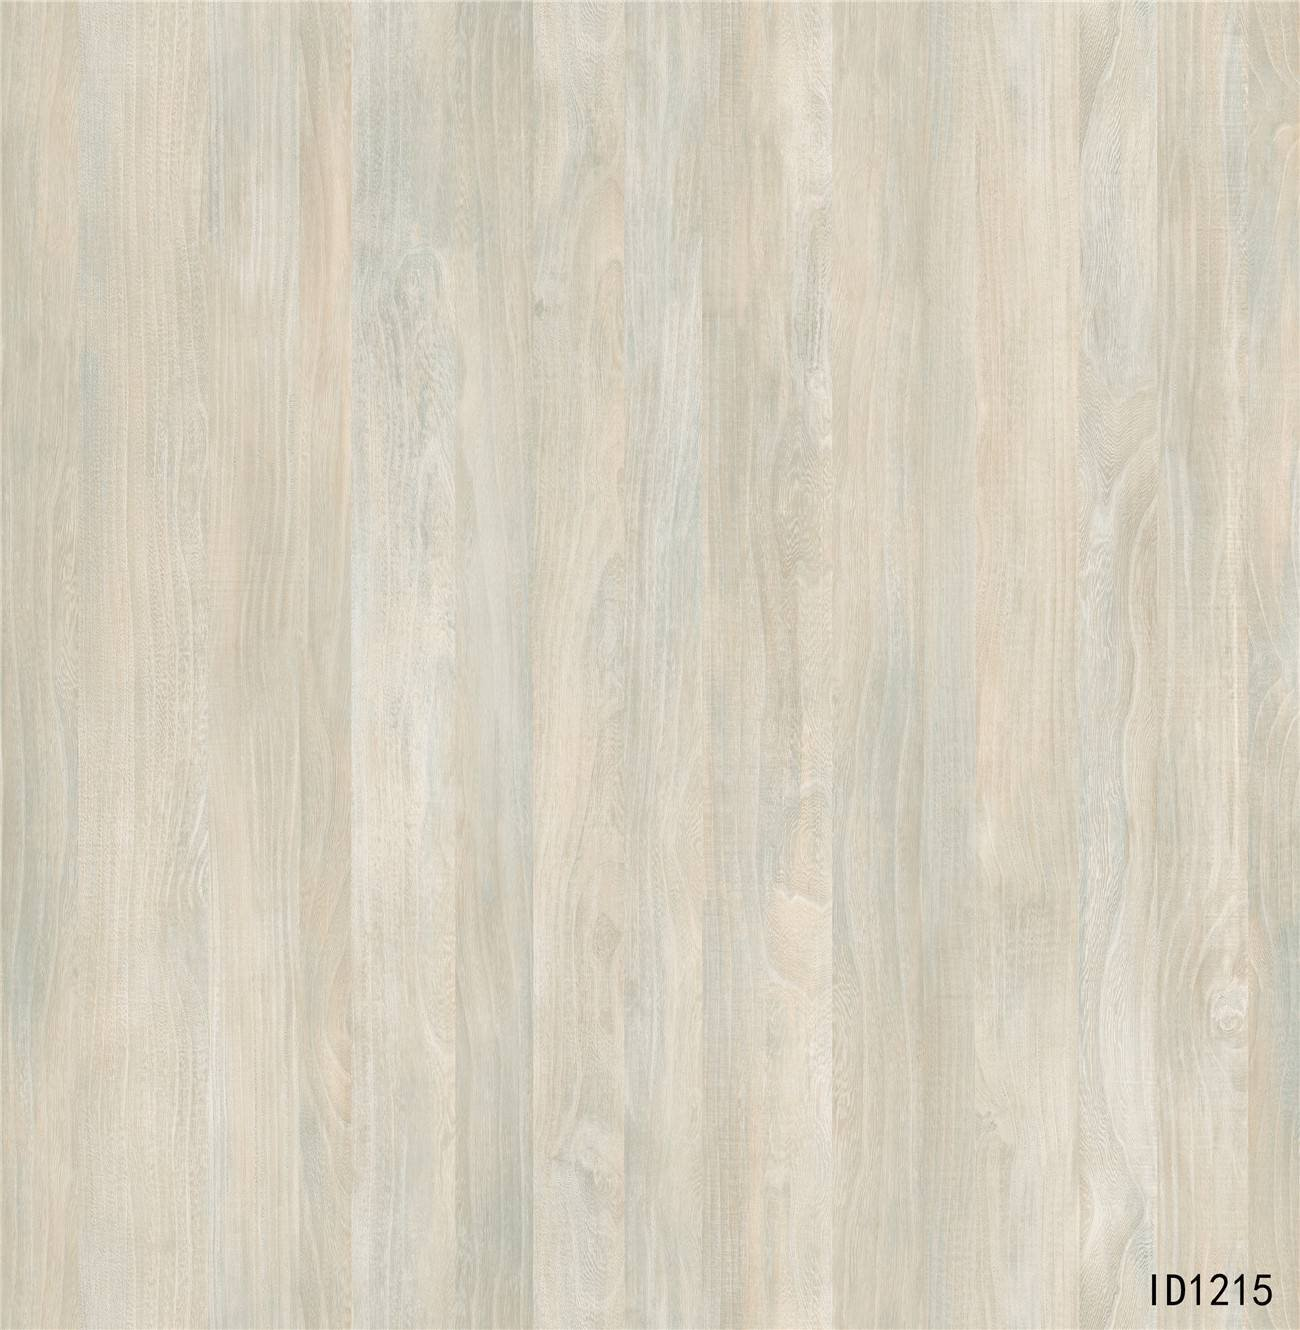 I.DECOR ID1215 Elm decor paper for melamine 4ft ID Series 2017 image61